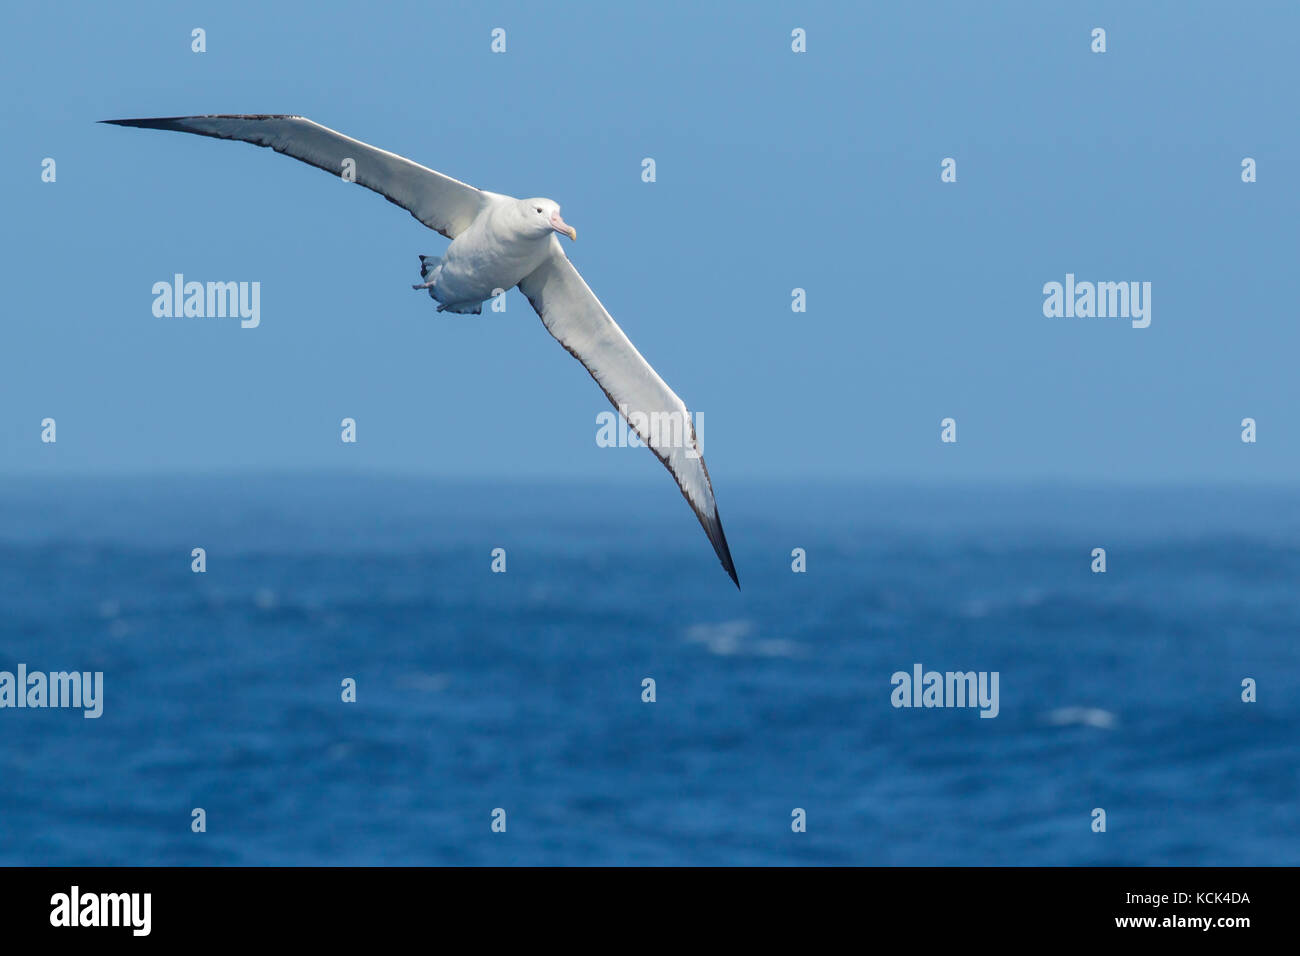 Southern Royal Albatross (Diomedea epomophora epomophora) flying over the ocean in search of food near South Georgia - Stock Image